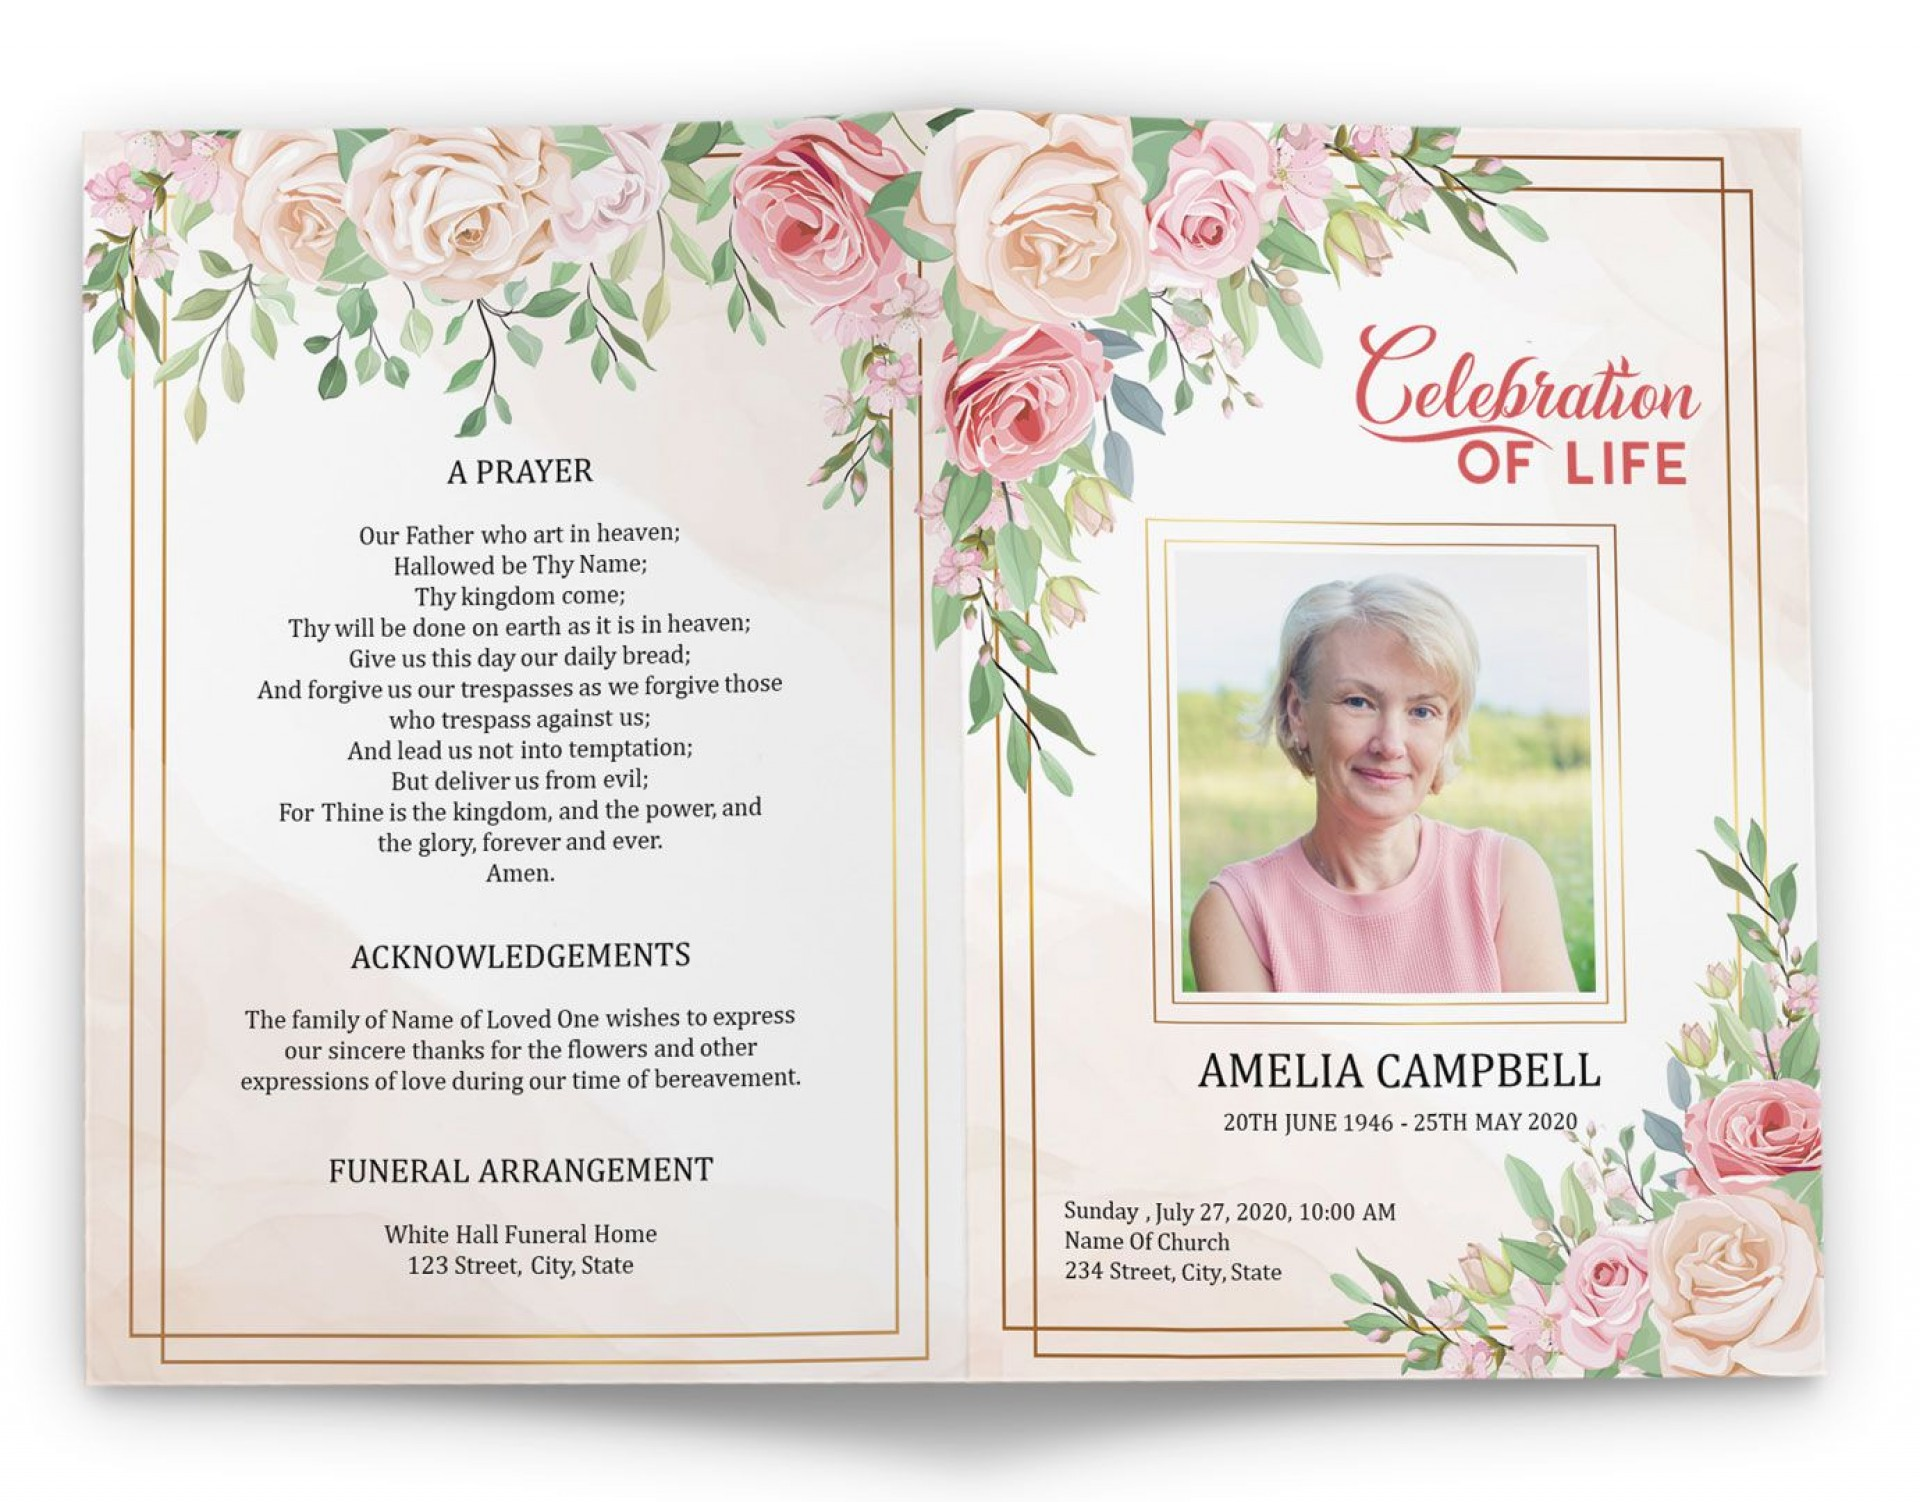 005 Magnificent Free Printable Celebration Of Life Program Template Highest Quality 1920